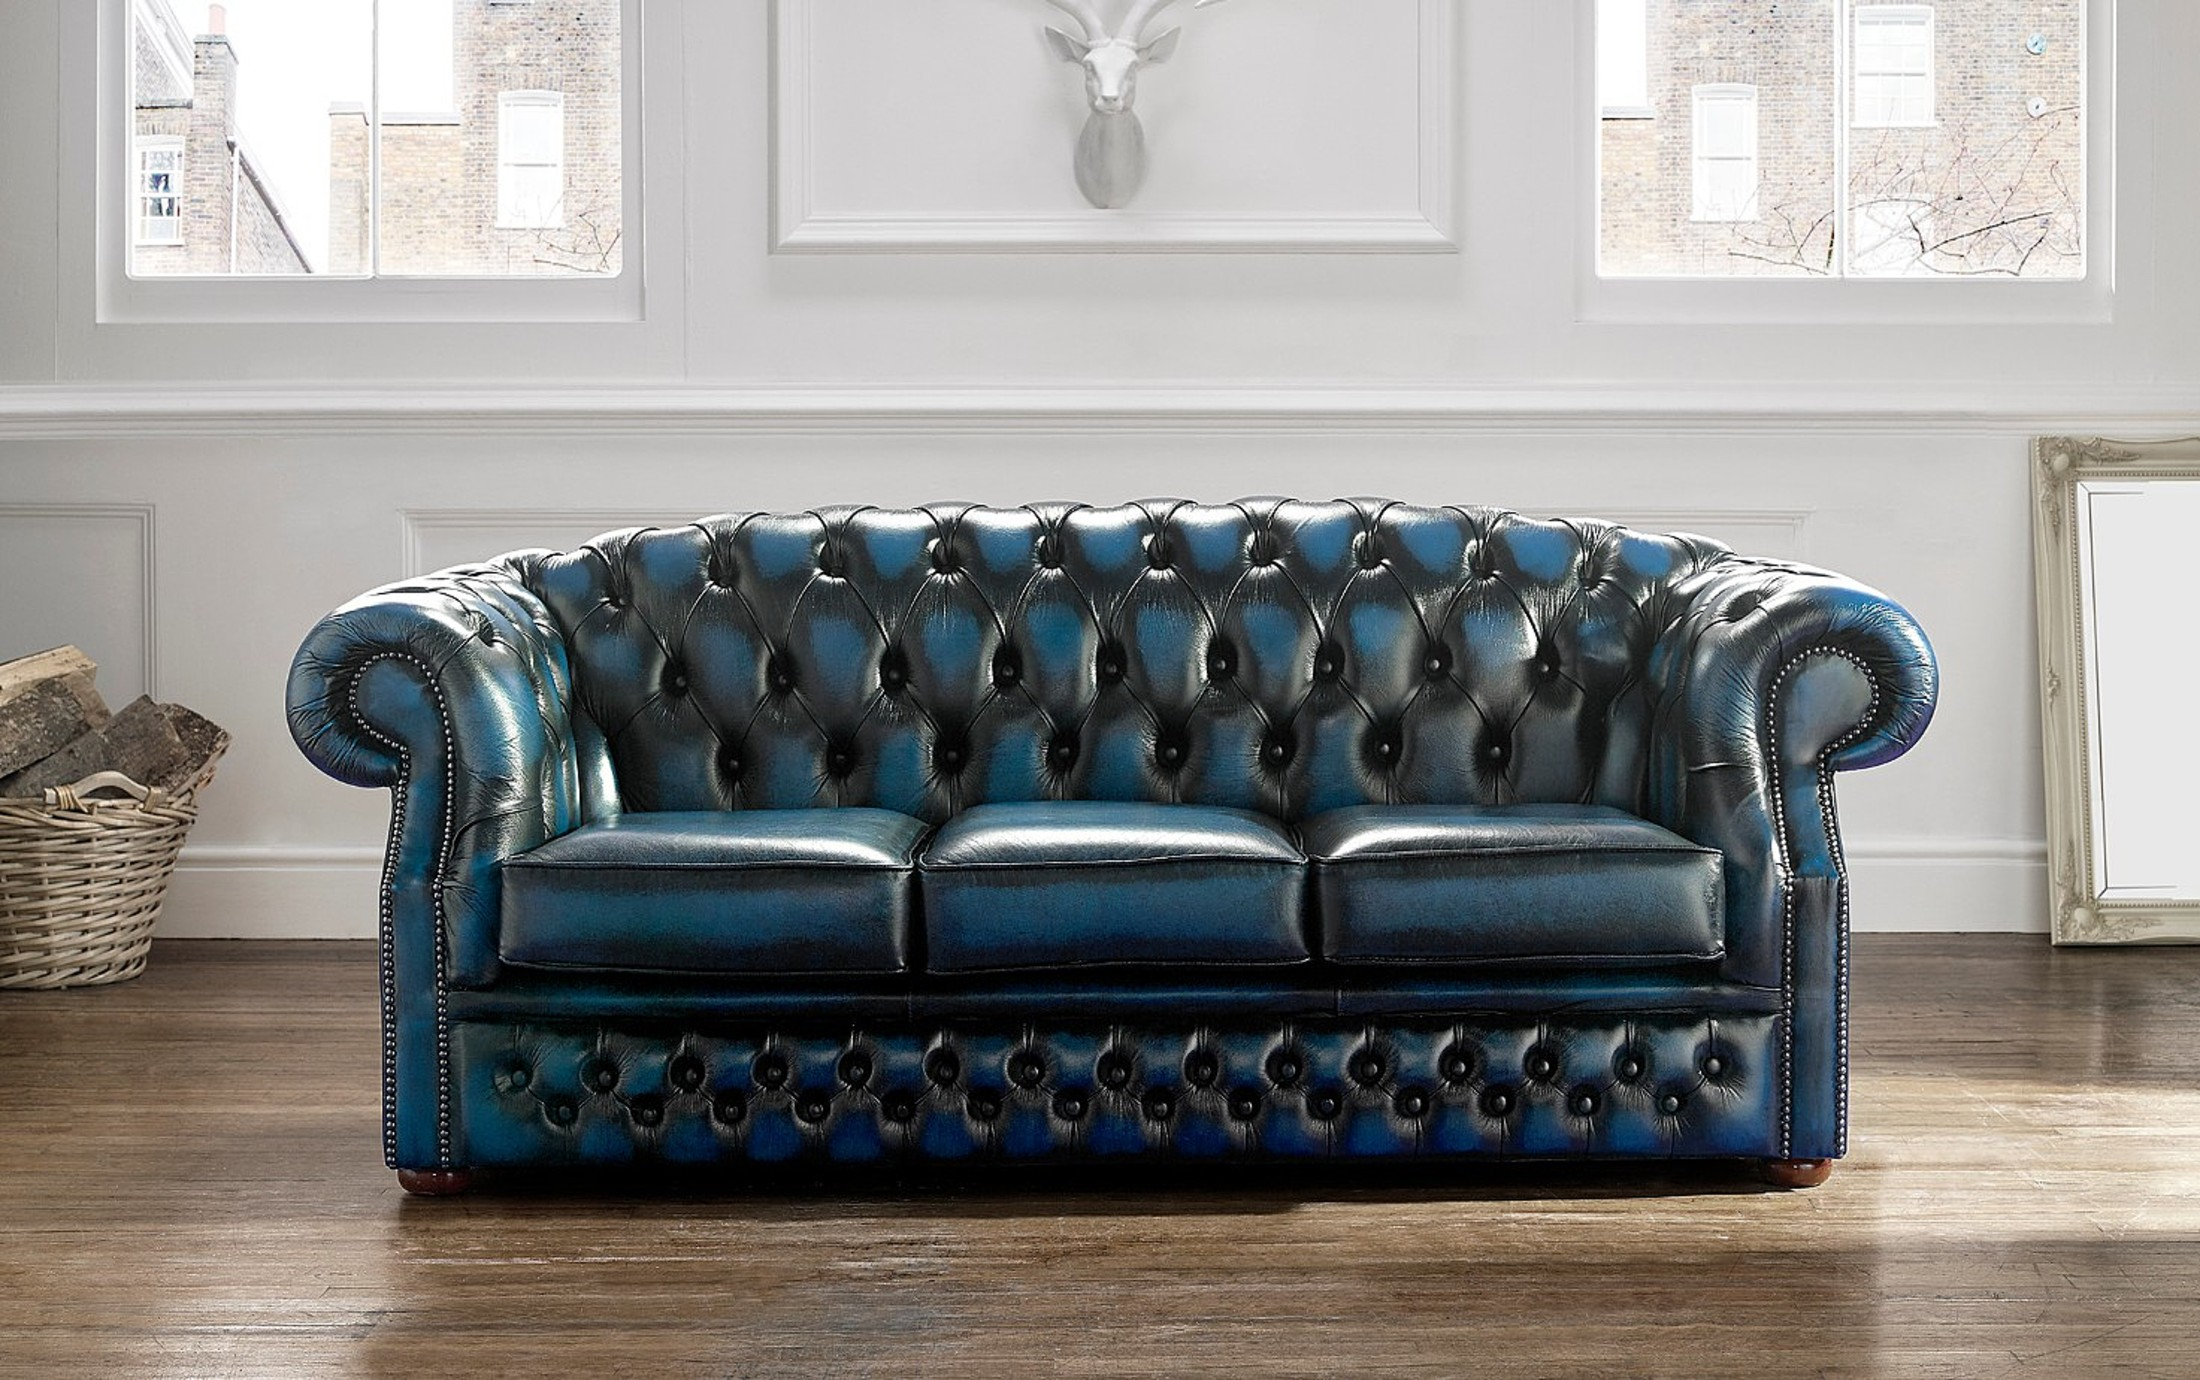 Couch Chesterfield Chesterfield Buckingham Leather Sofa 3 Seater Antique Blue